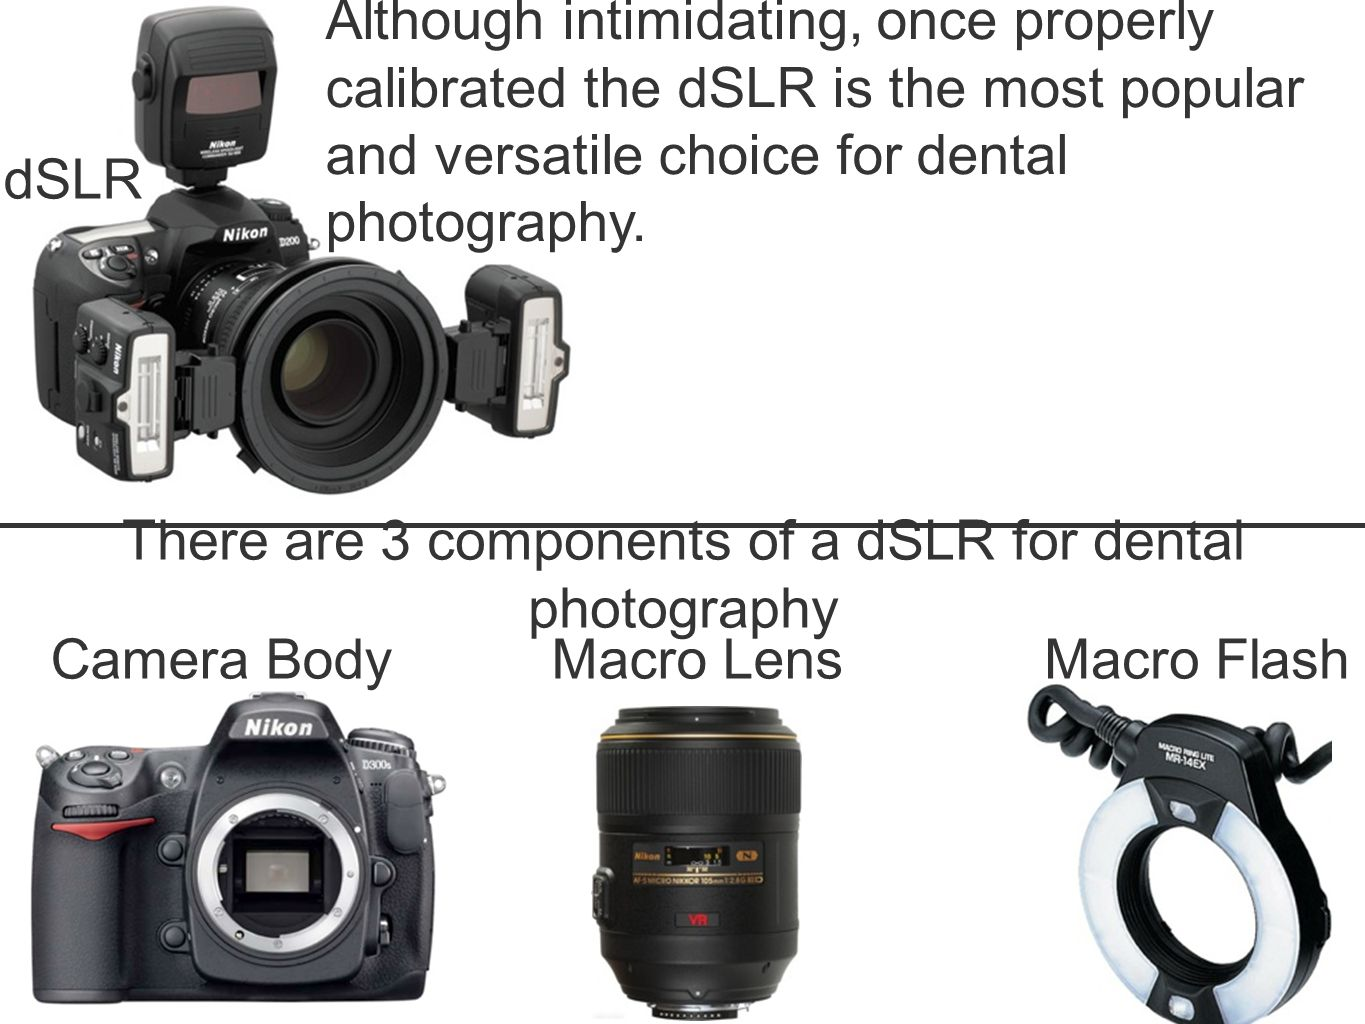 There are 3 components of a dSLR for dental photography